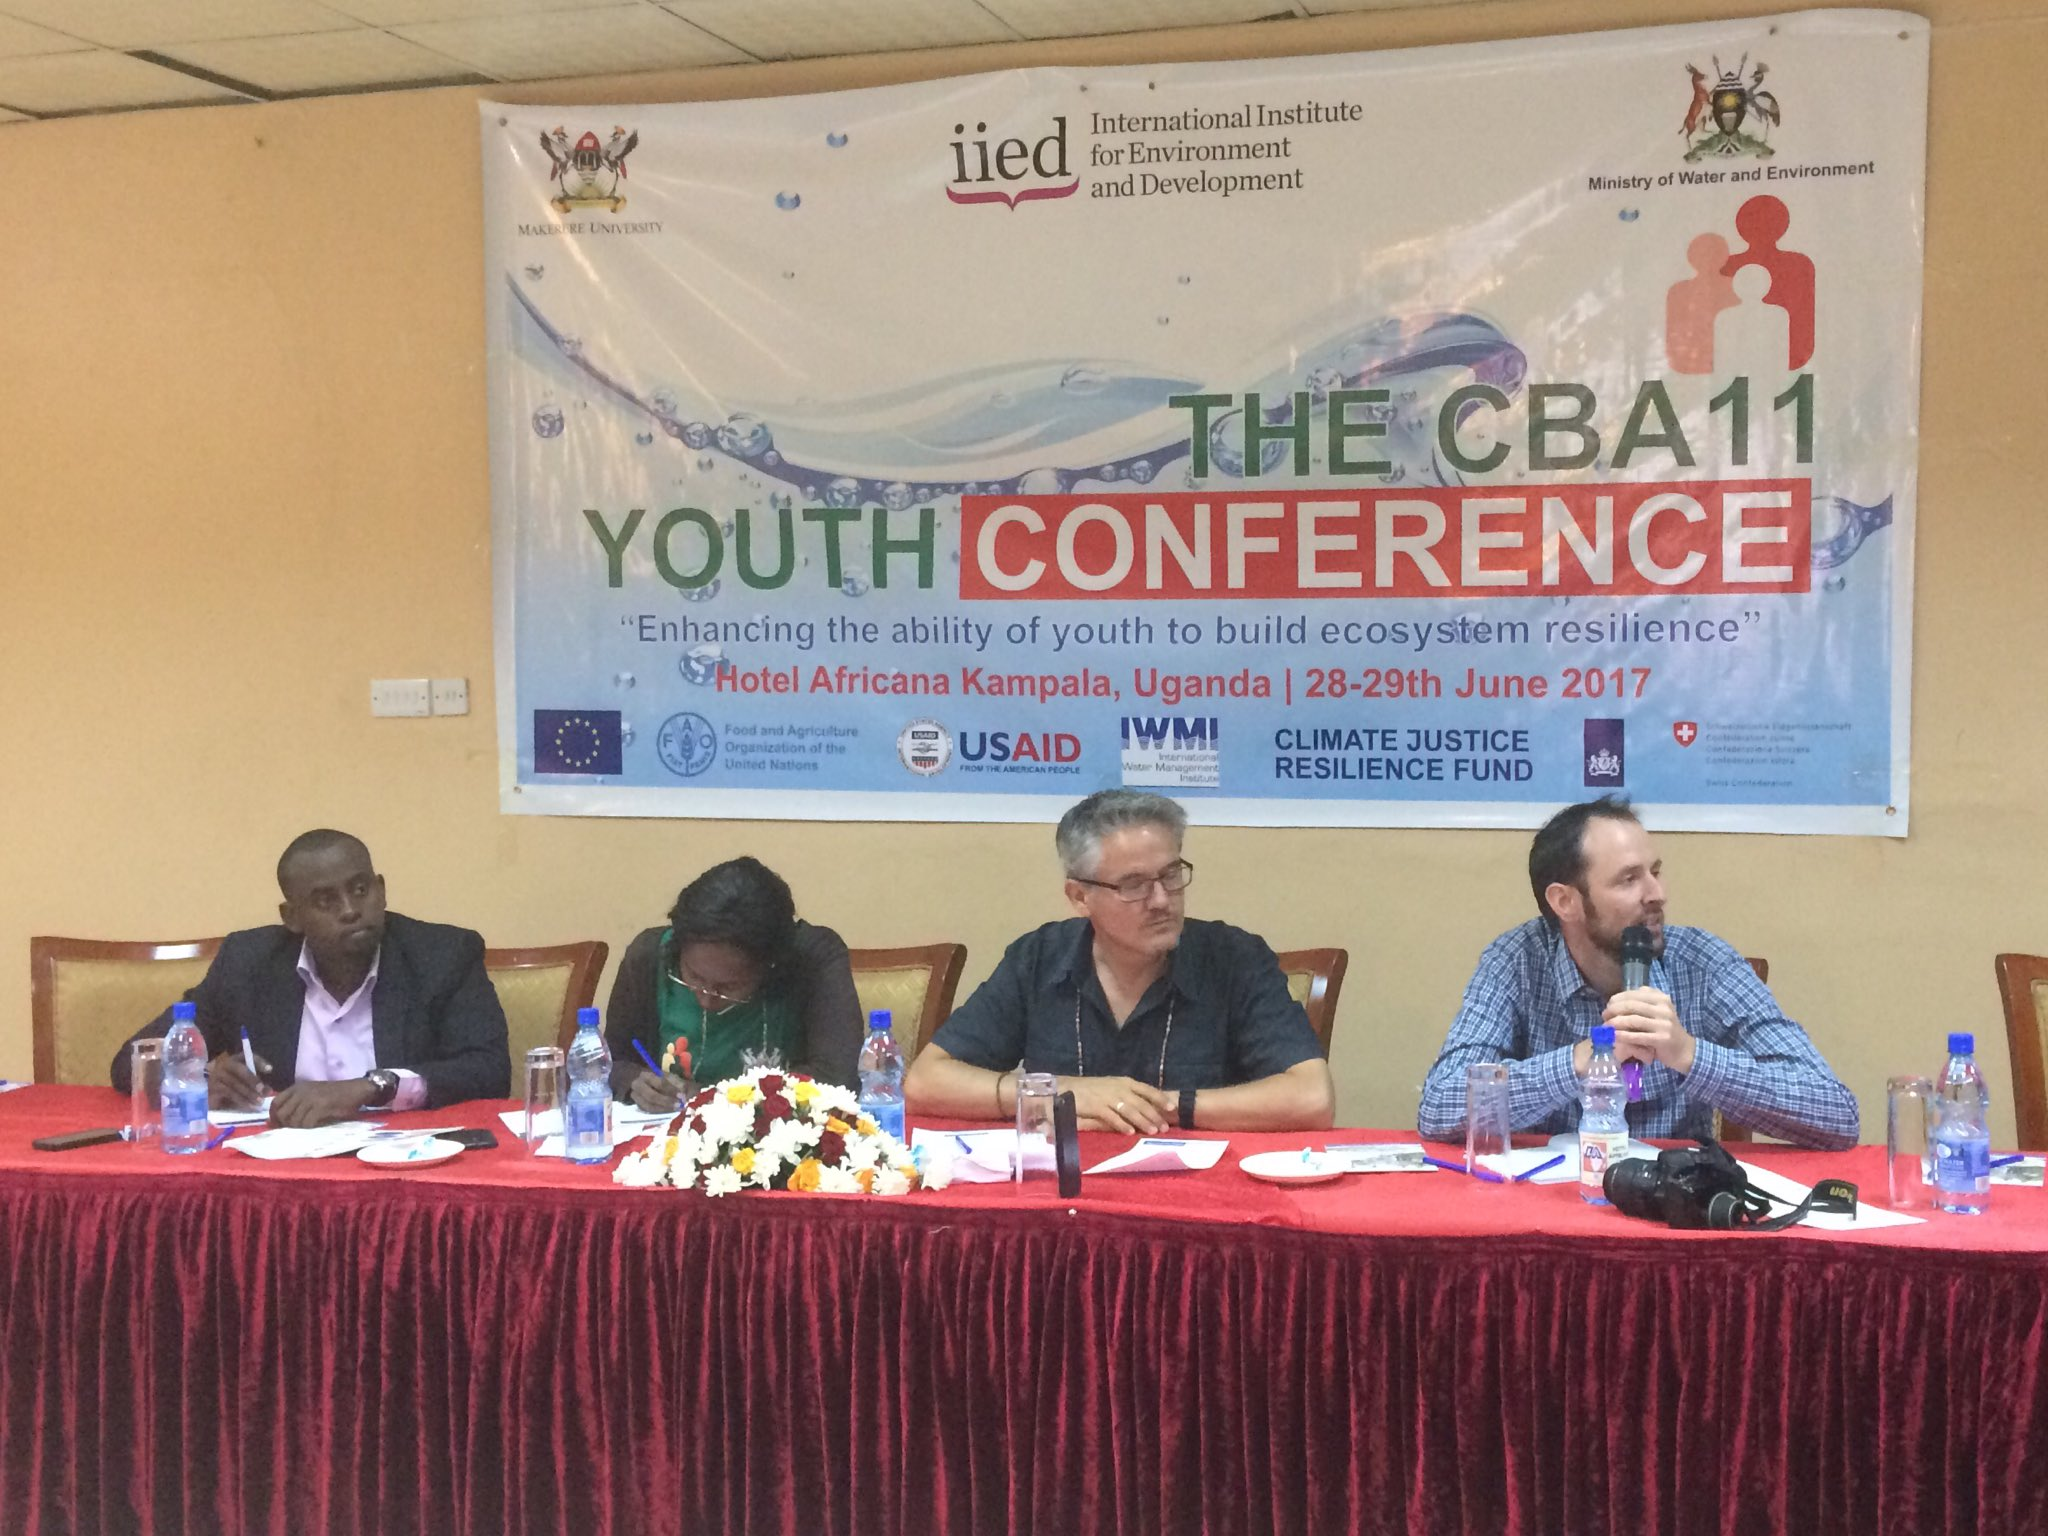 #CBA11 #YouthSummit @IWMI_ Lion's Den judging business ideas on youth as entrepreneurs #foodsecurity #climatesmart #Adaptation @WLE_CGIAR https://t.co/ZJq2xf8SpP